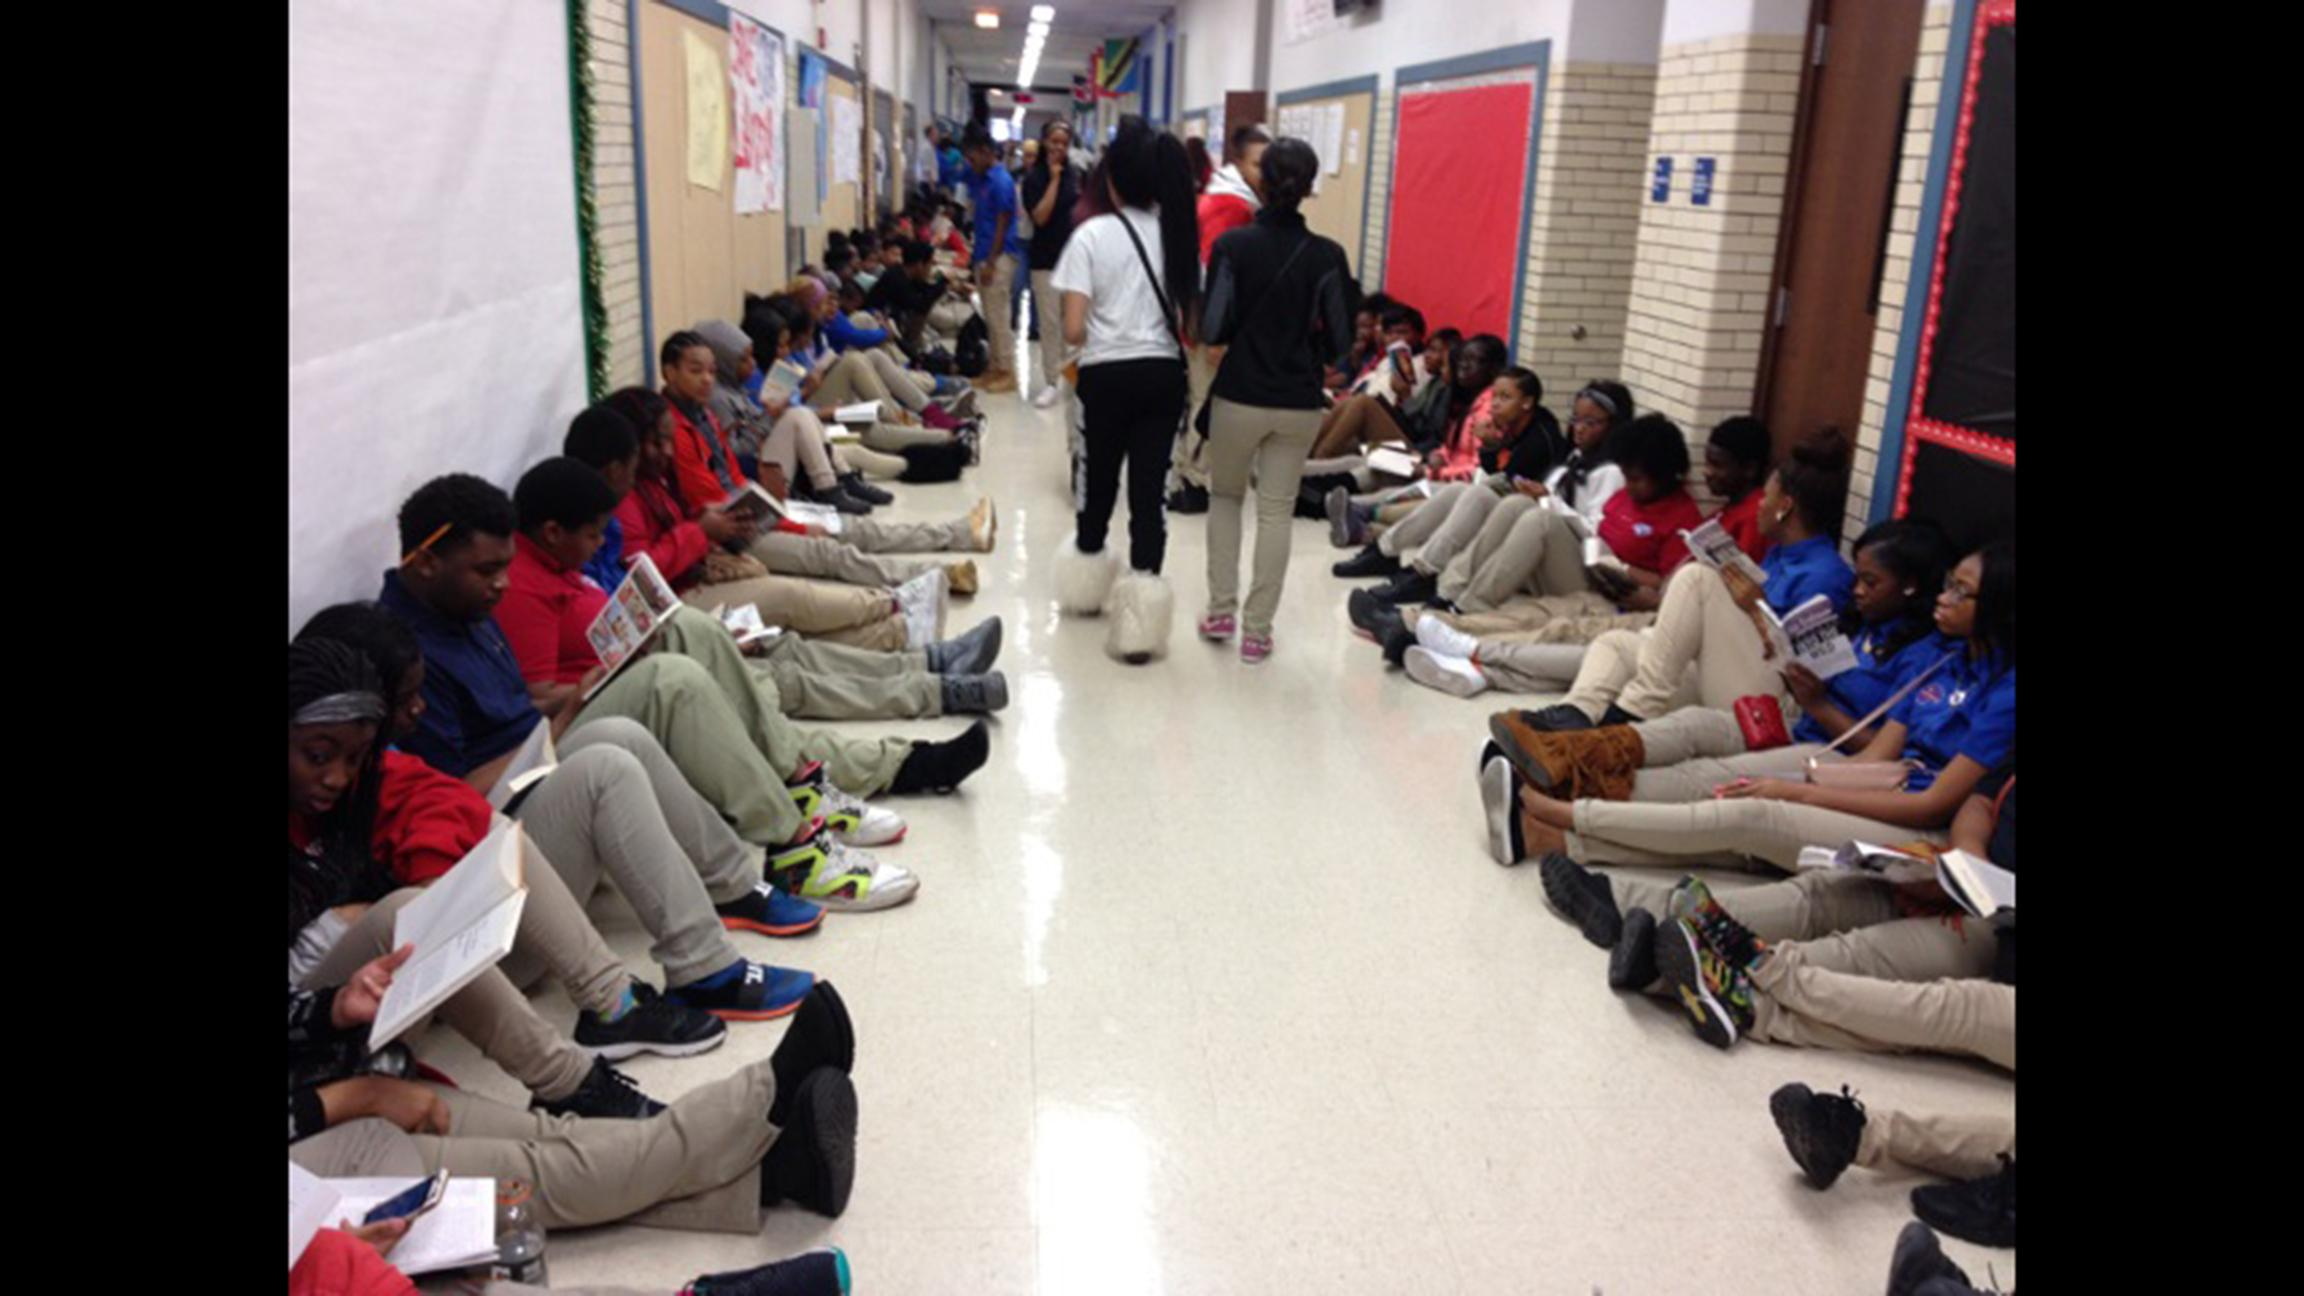 Students throughout the DuSable campus sat outside their classrooms reading last December to protest the firing of librarian Sara Sayigh. She was re-hired by the district, but had her position cut to half-time during the latest round of CPS staff cuts. (Courtesy of Alvita Payne)